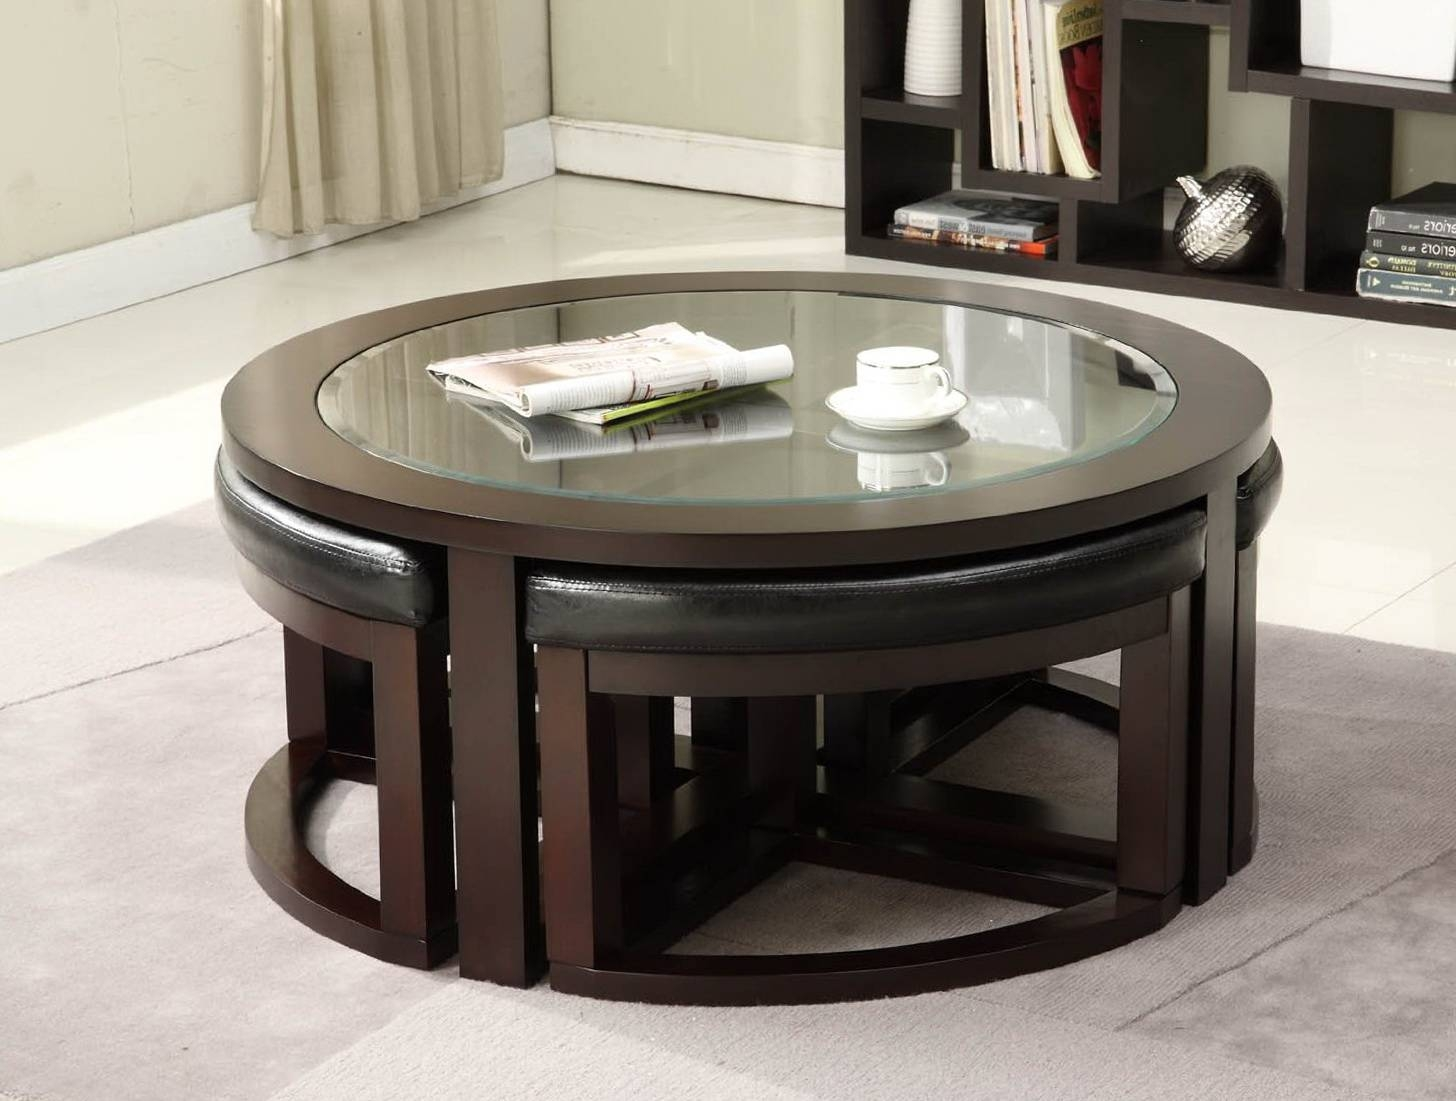 Better Homes And Gardens River Crest Coffee Table. Free Shipping pertaining to Round Woven Coffee Tables (Image 6 of 30)